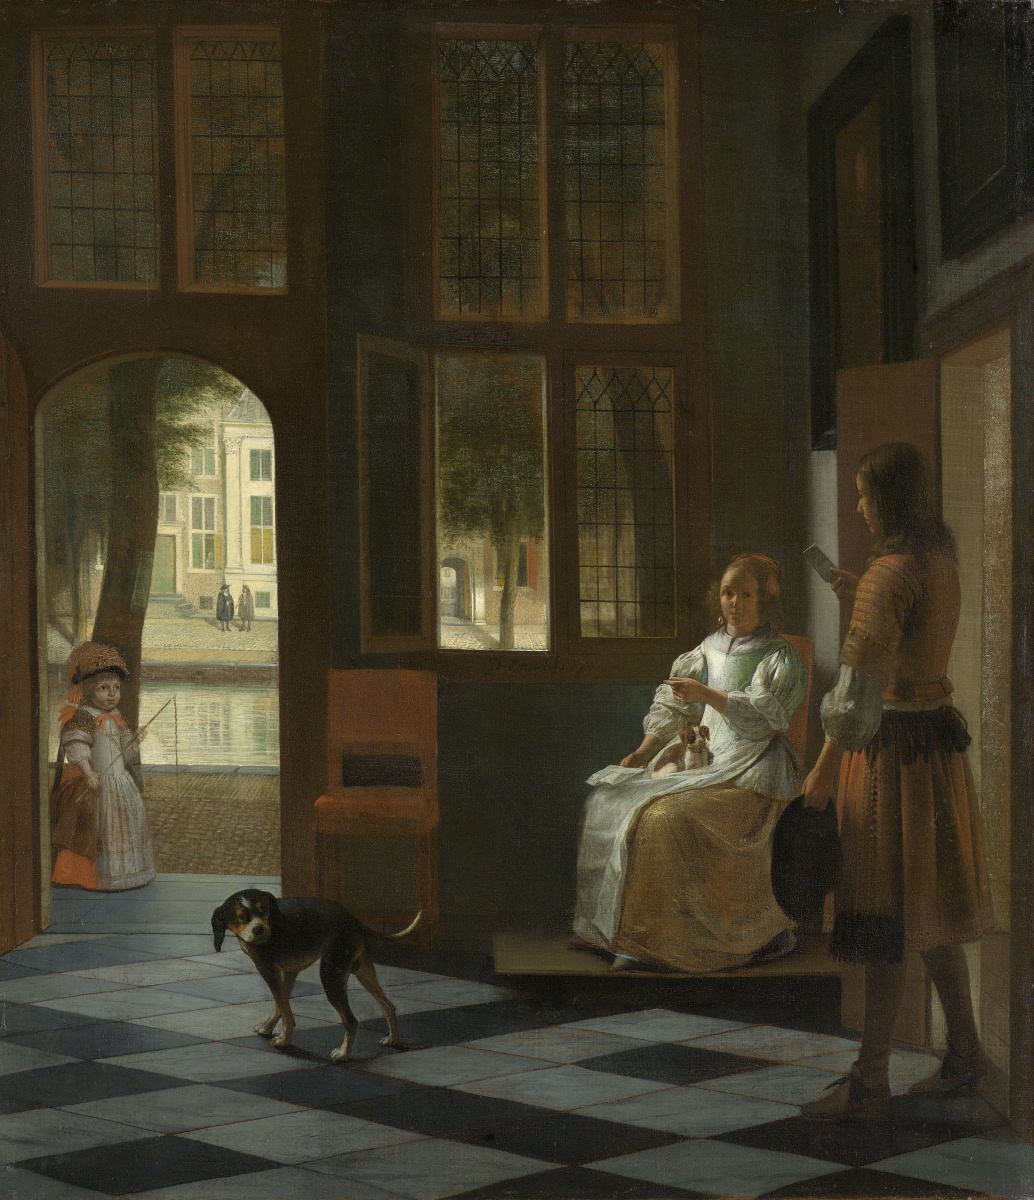 Pieter de Hooch. The man gives a letter to the woman in the hallway